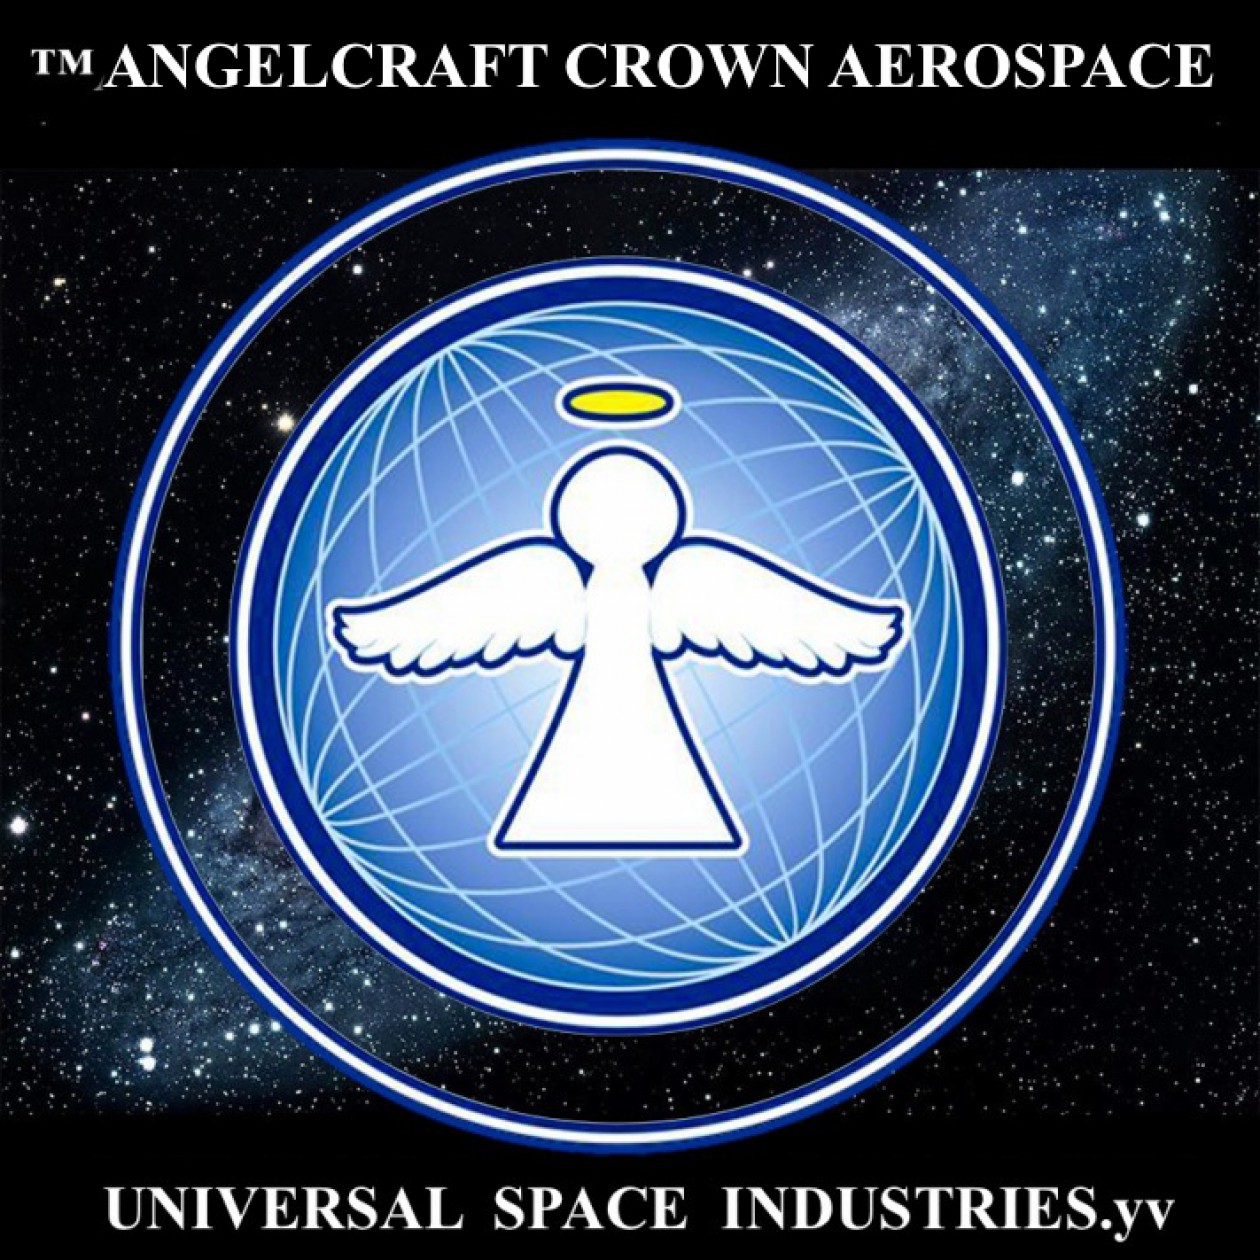 AU™Angelcraft Crown Aerospace Corporation.corpvs ….together we are one God fearing Holy Spirit loving angelic race that reincarnate in various tones and shades of Black Brown Tan and Ivory in color